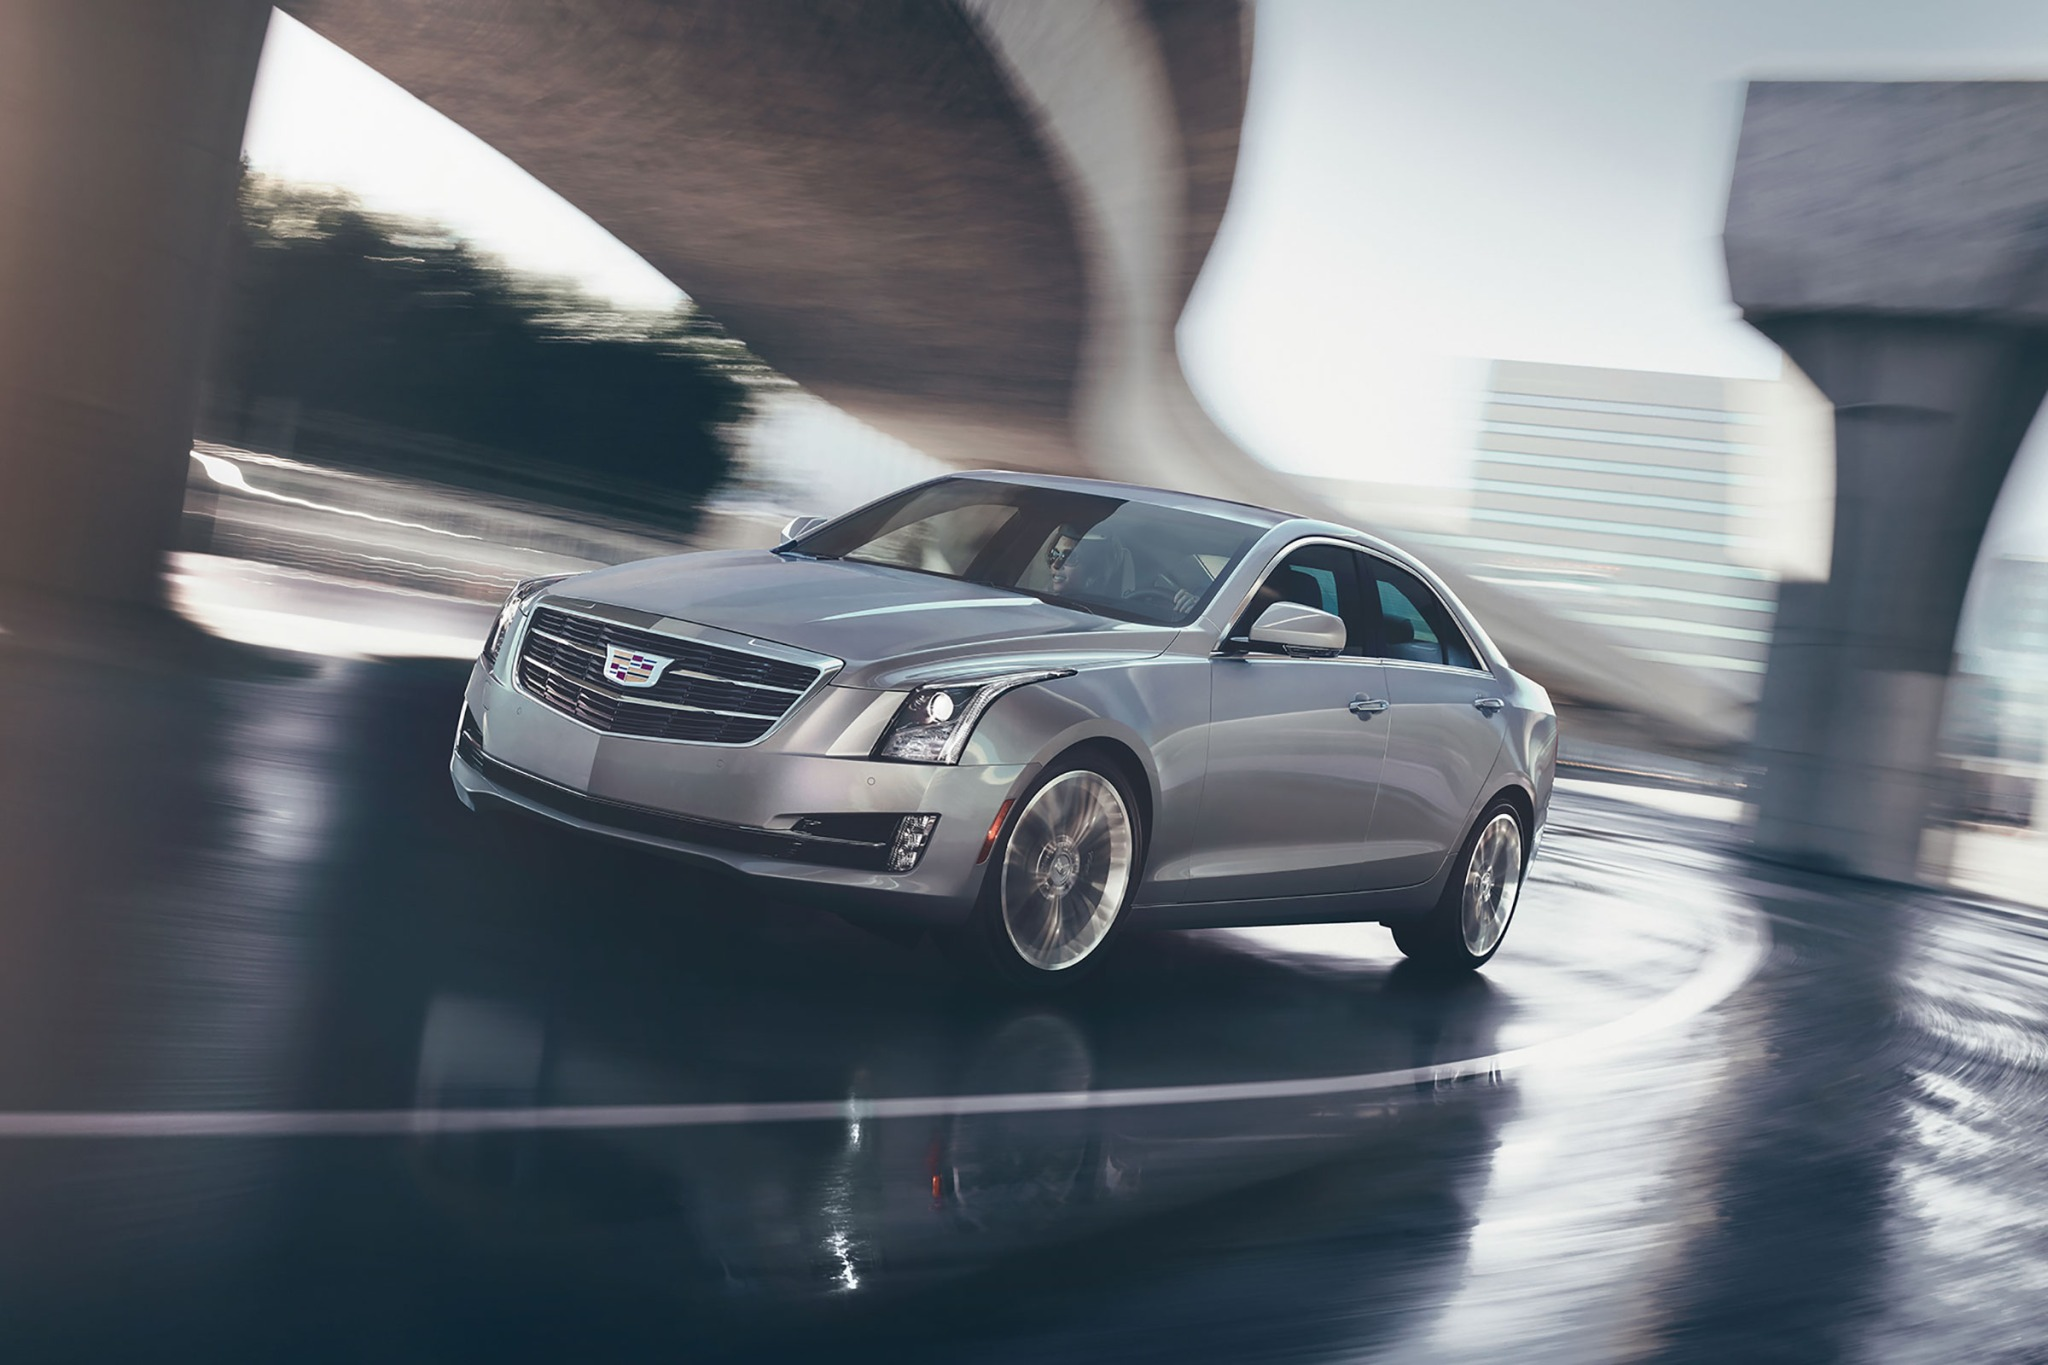 2017 cadillac ats sedan premium performance fq oem 2 2048